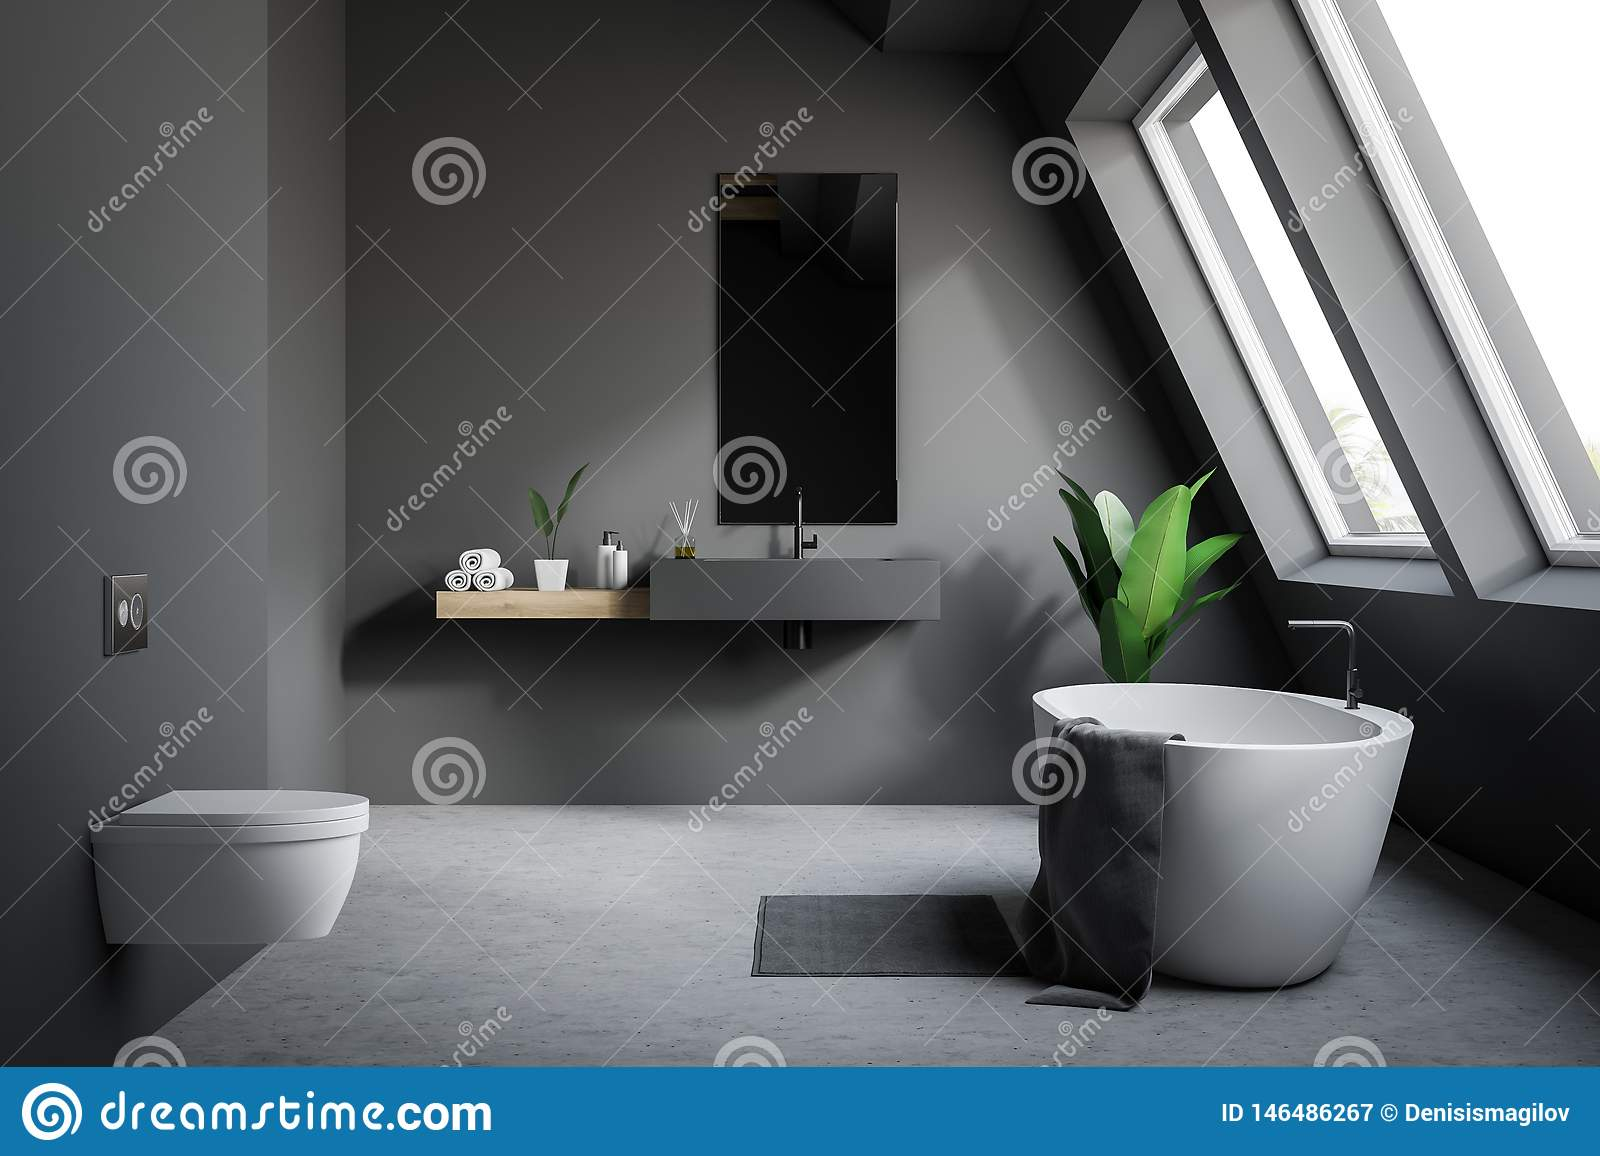 Attic Gray Bathroom With Toilet Stock Illustration